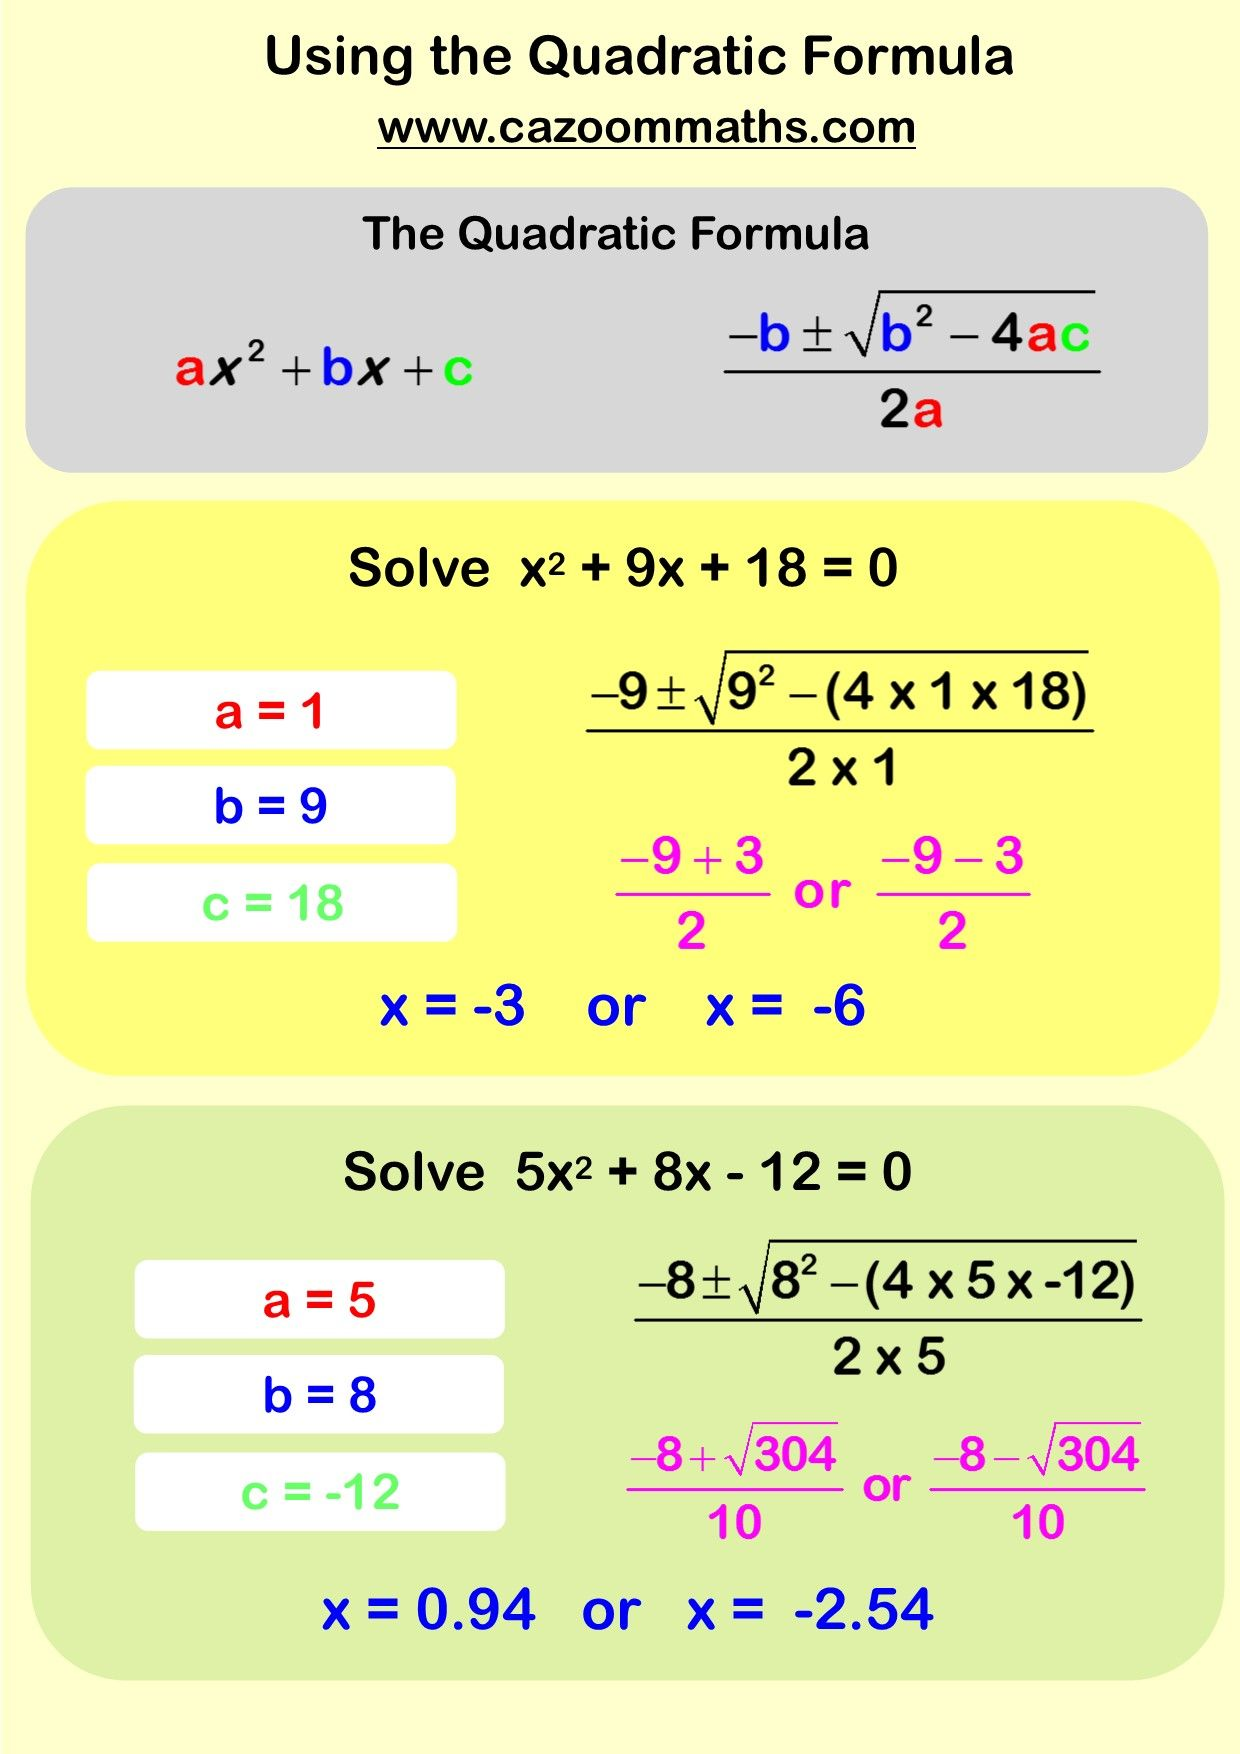 solving linear equations teaching resource - Solving Equations Worksheet Pdf